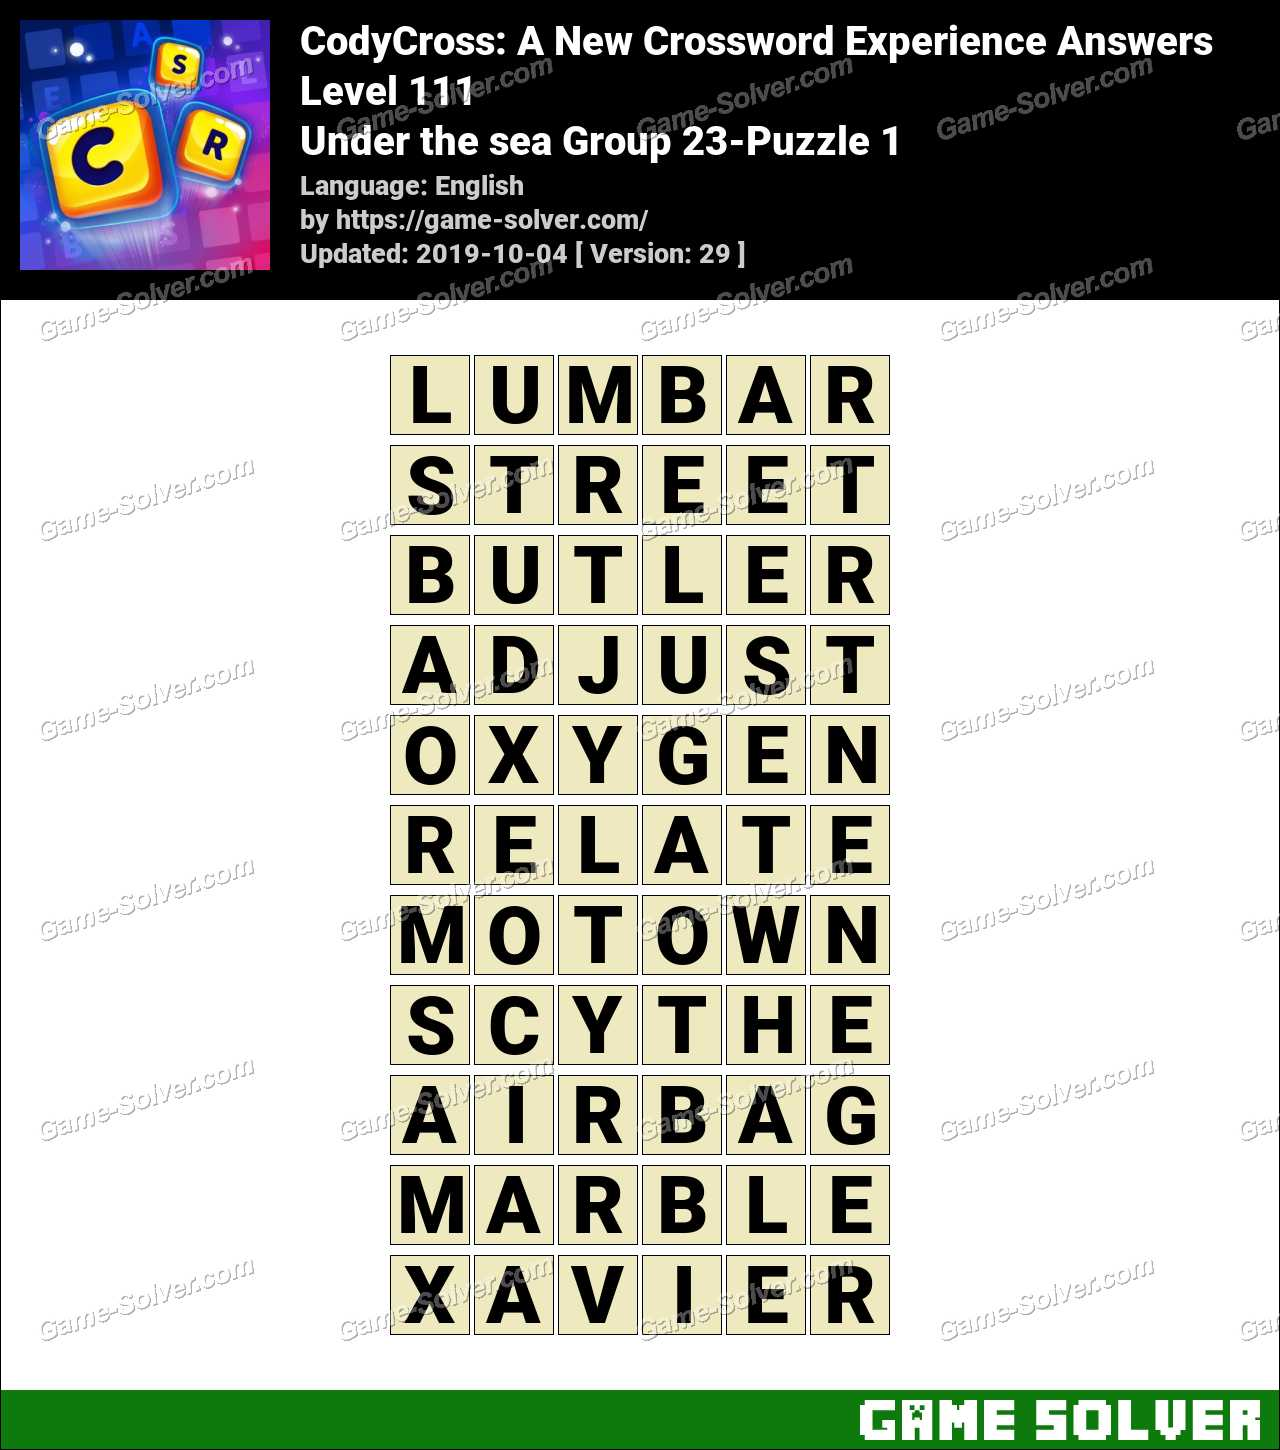 CodyCross Under the sea Group 23-Puzzle 1 Answers